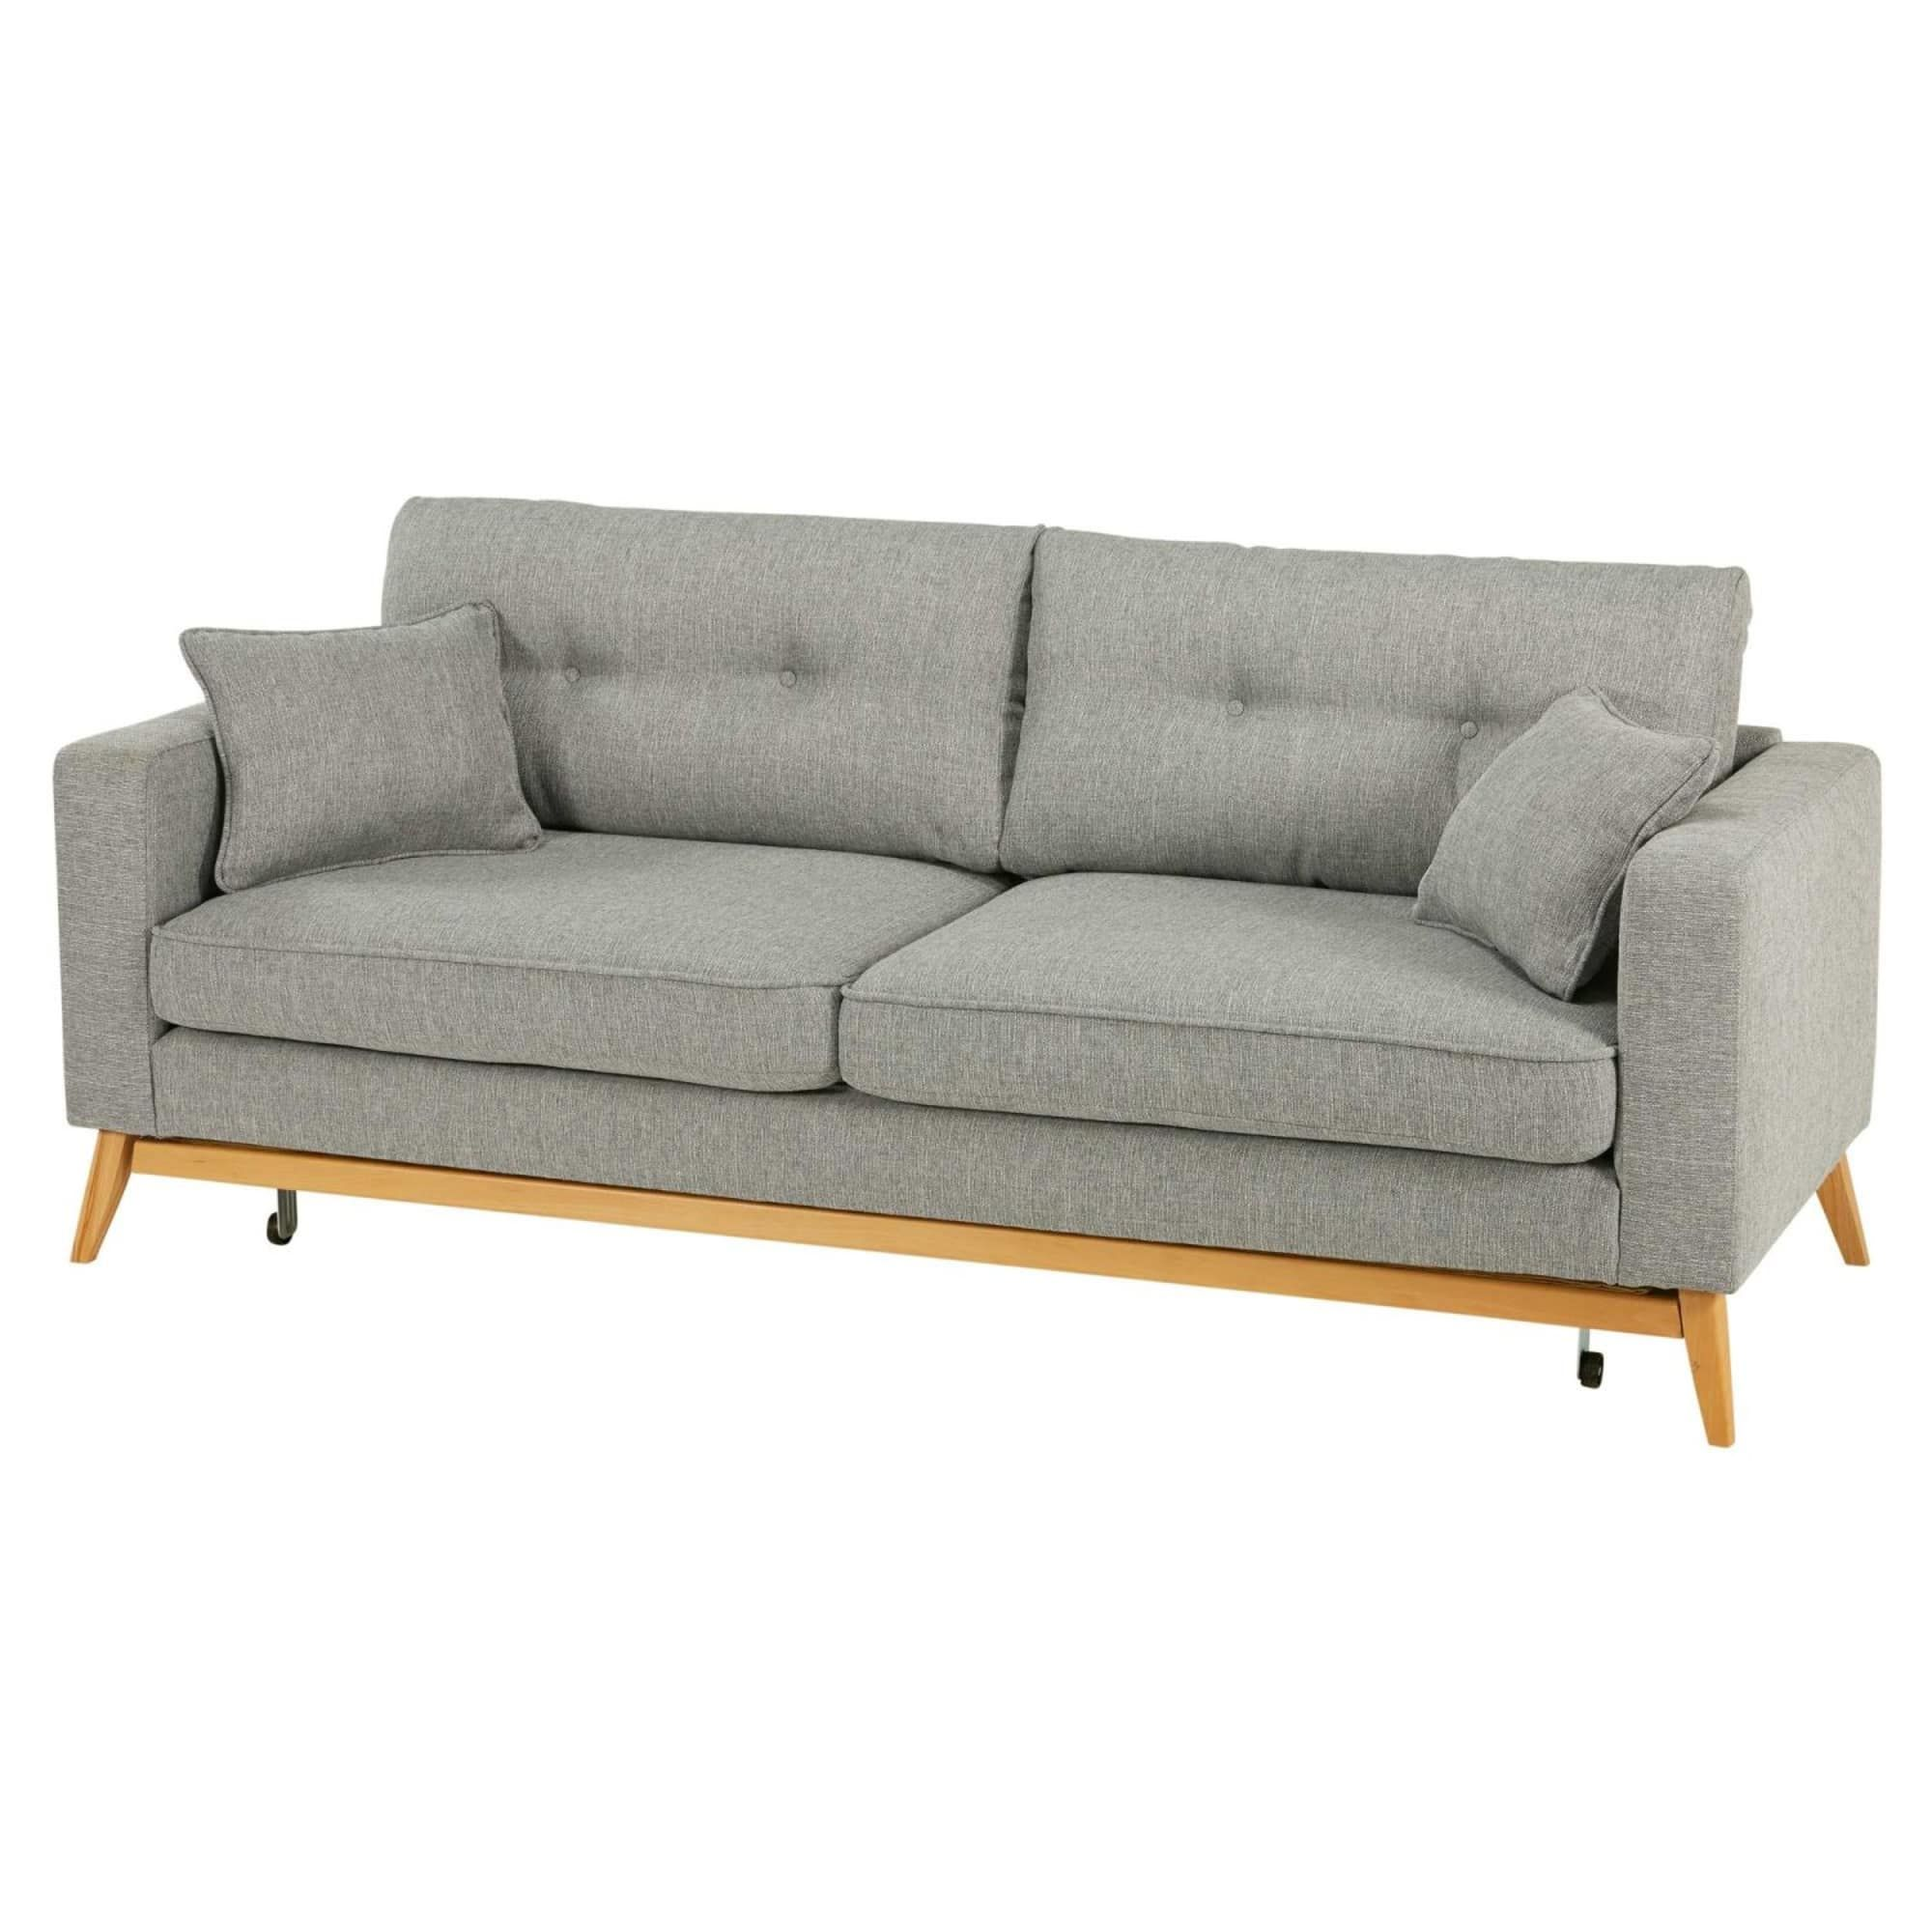 Fixed sofas in 2019 | Sofa bed, Sofa, Scandinavian sofas